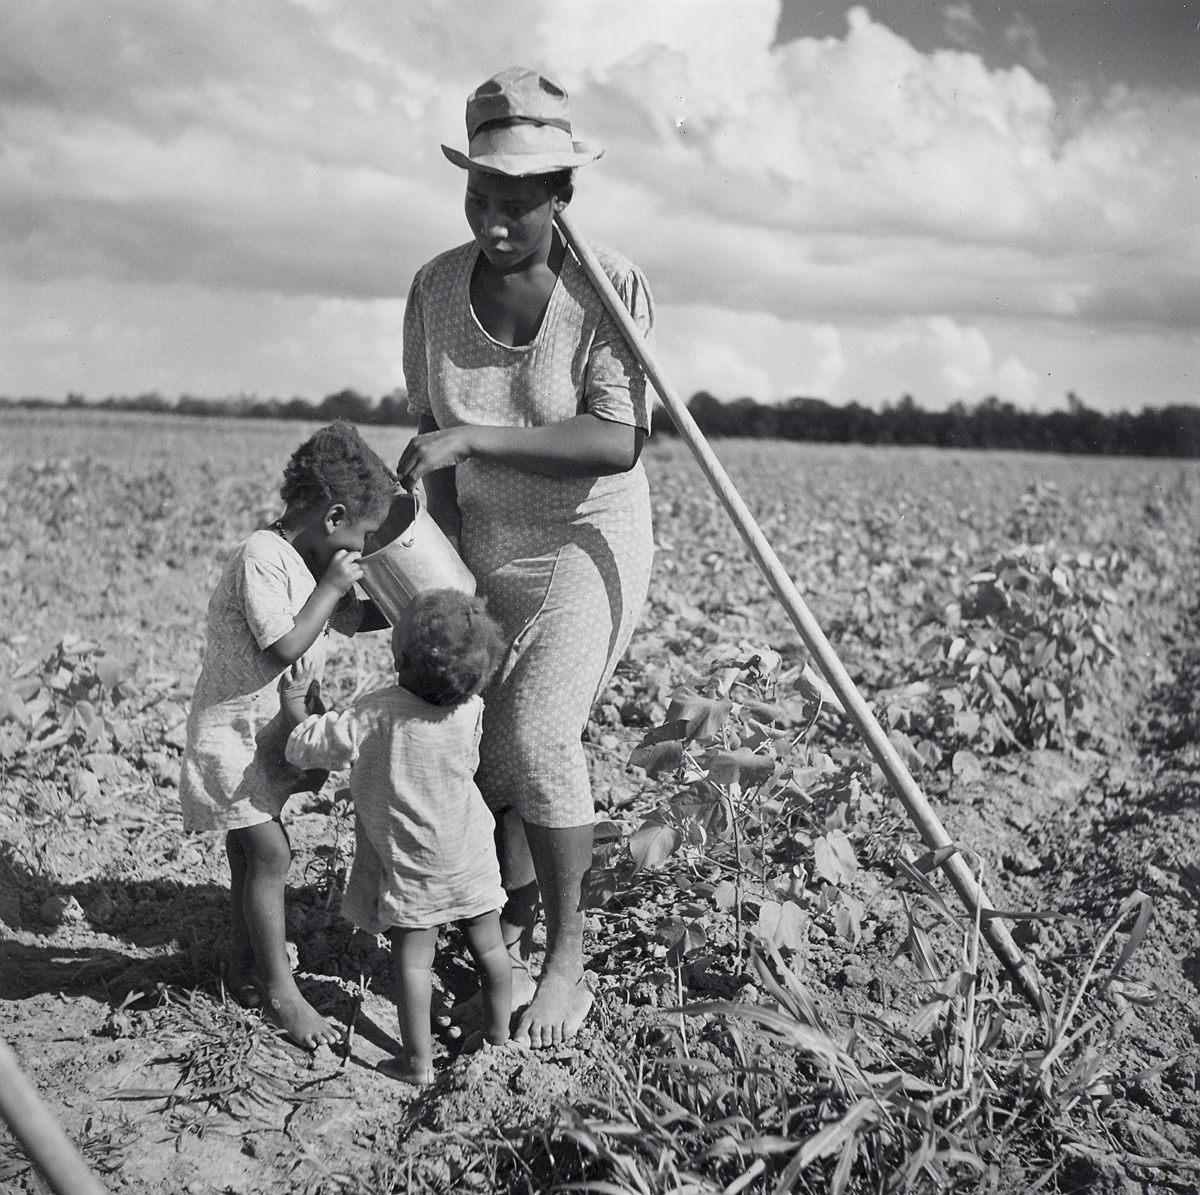 Marion Post-Wolcott, Taking a Drink, Natchitoches, LA 1941